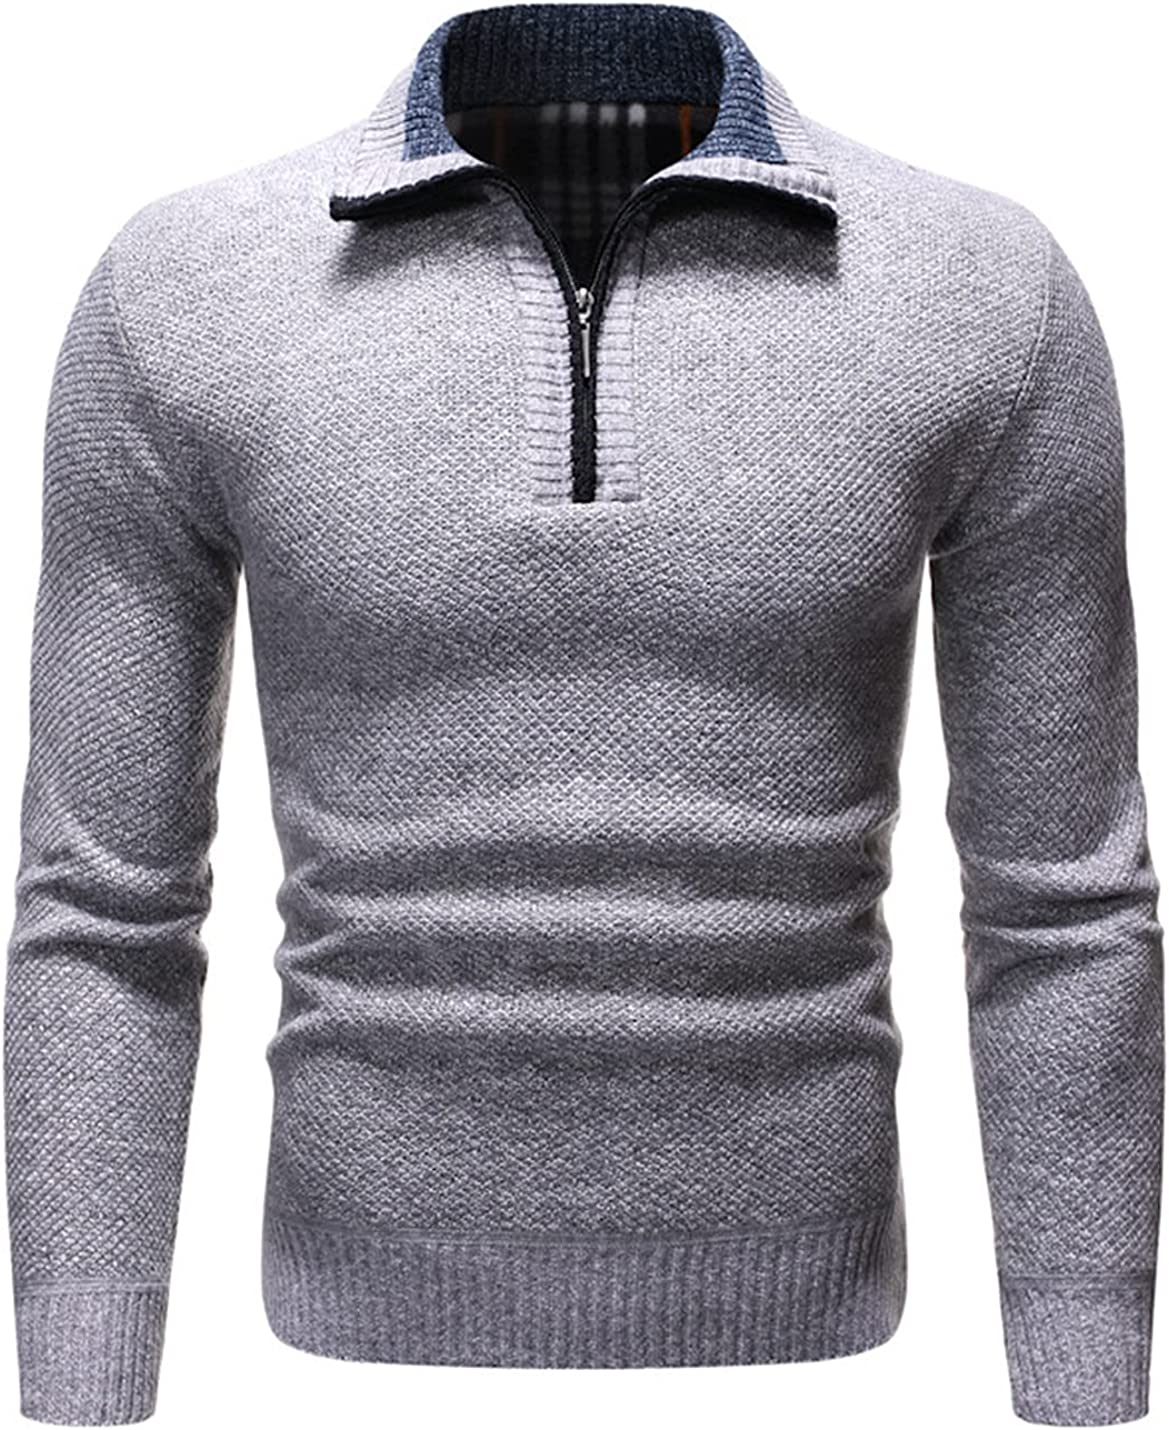 Peaceglad Men's Knitted Sweaters Long Sleeves Casual Slim Thick Zip Sweaters Pullover